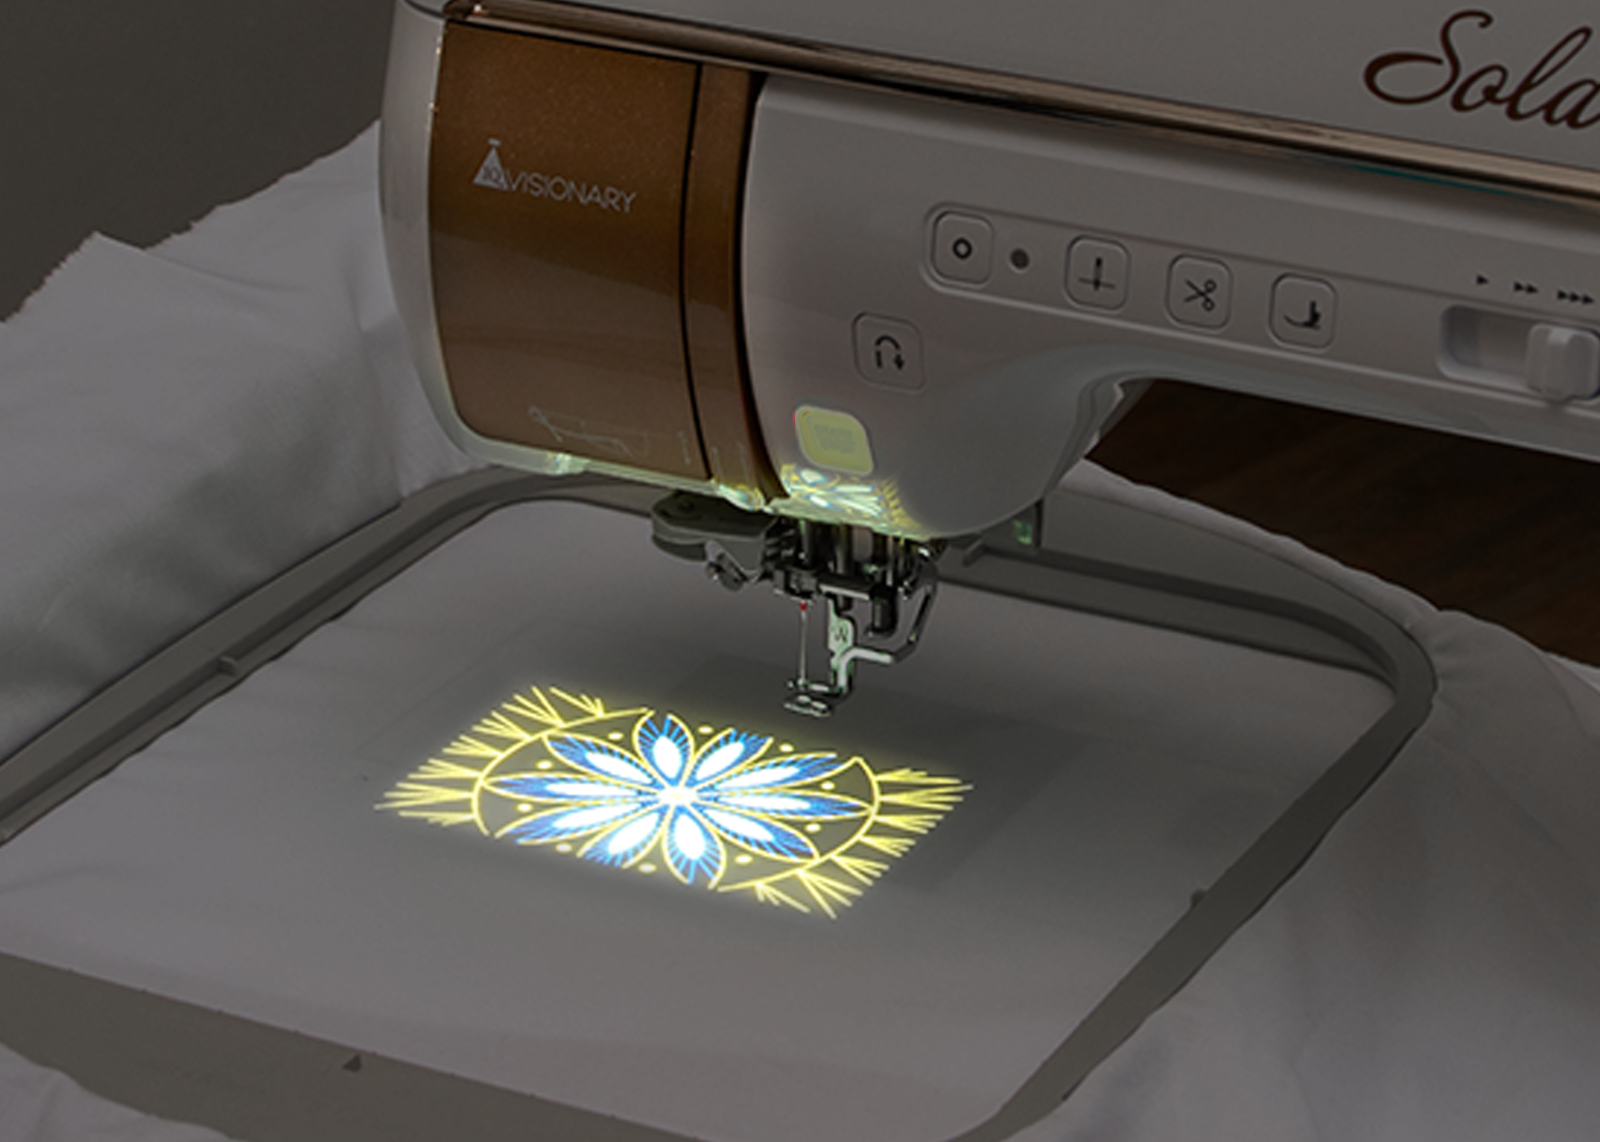 Use the Baby Lock Solaris 2 Sewing and Embroidery Machine's built-in projector camera for perfect embroidery placement.